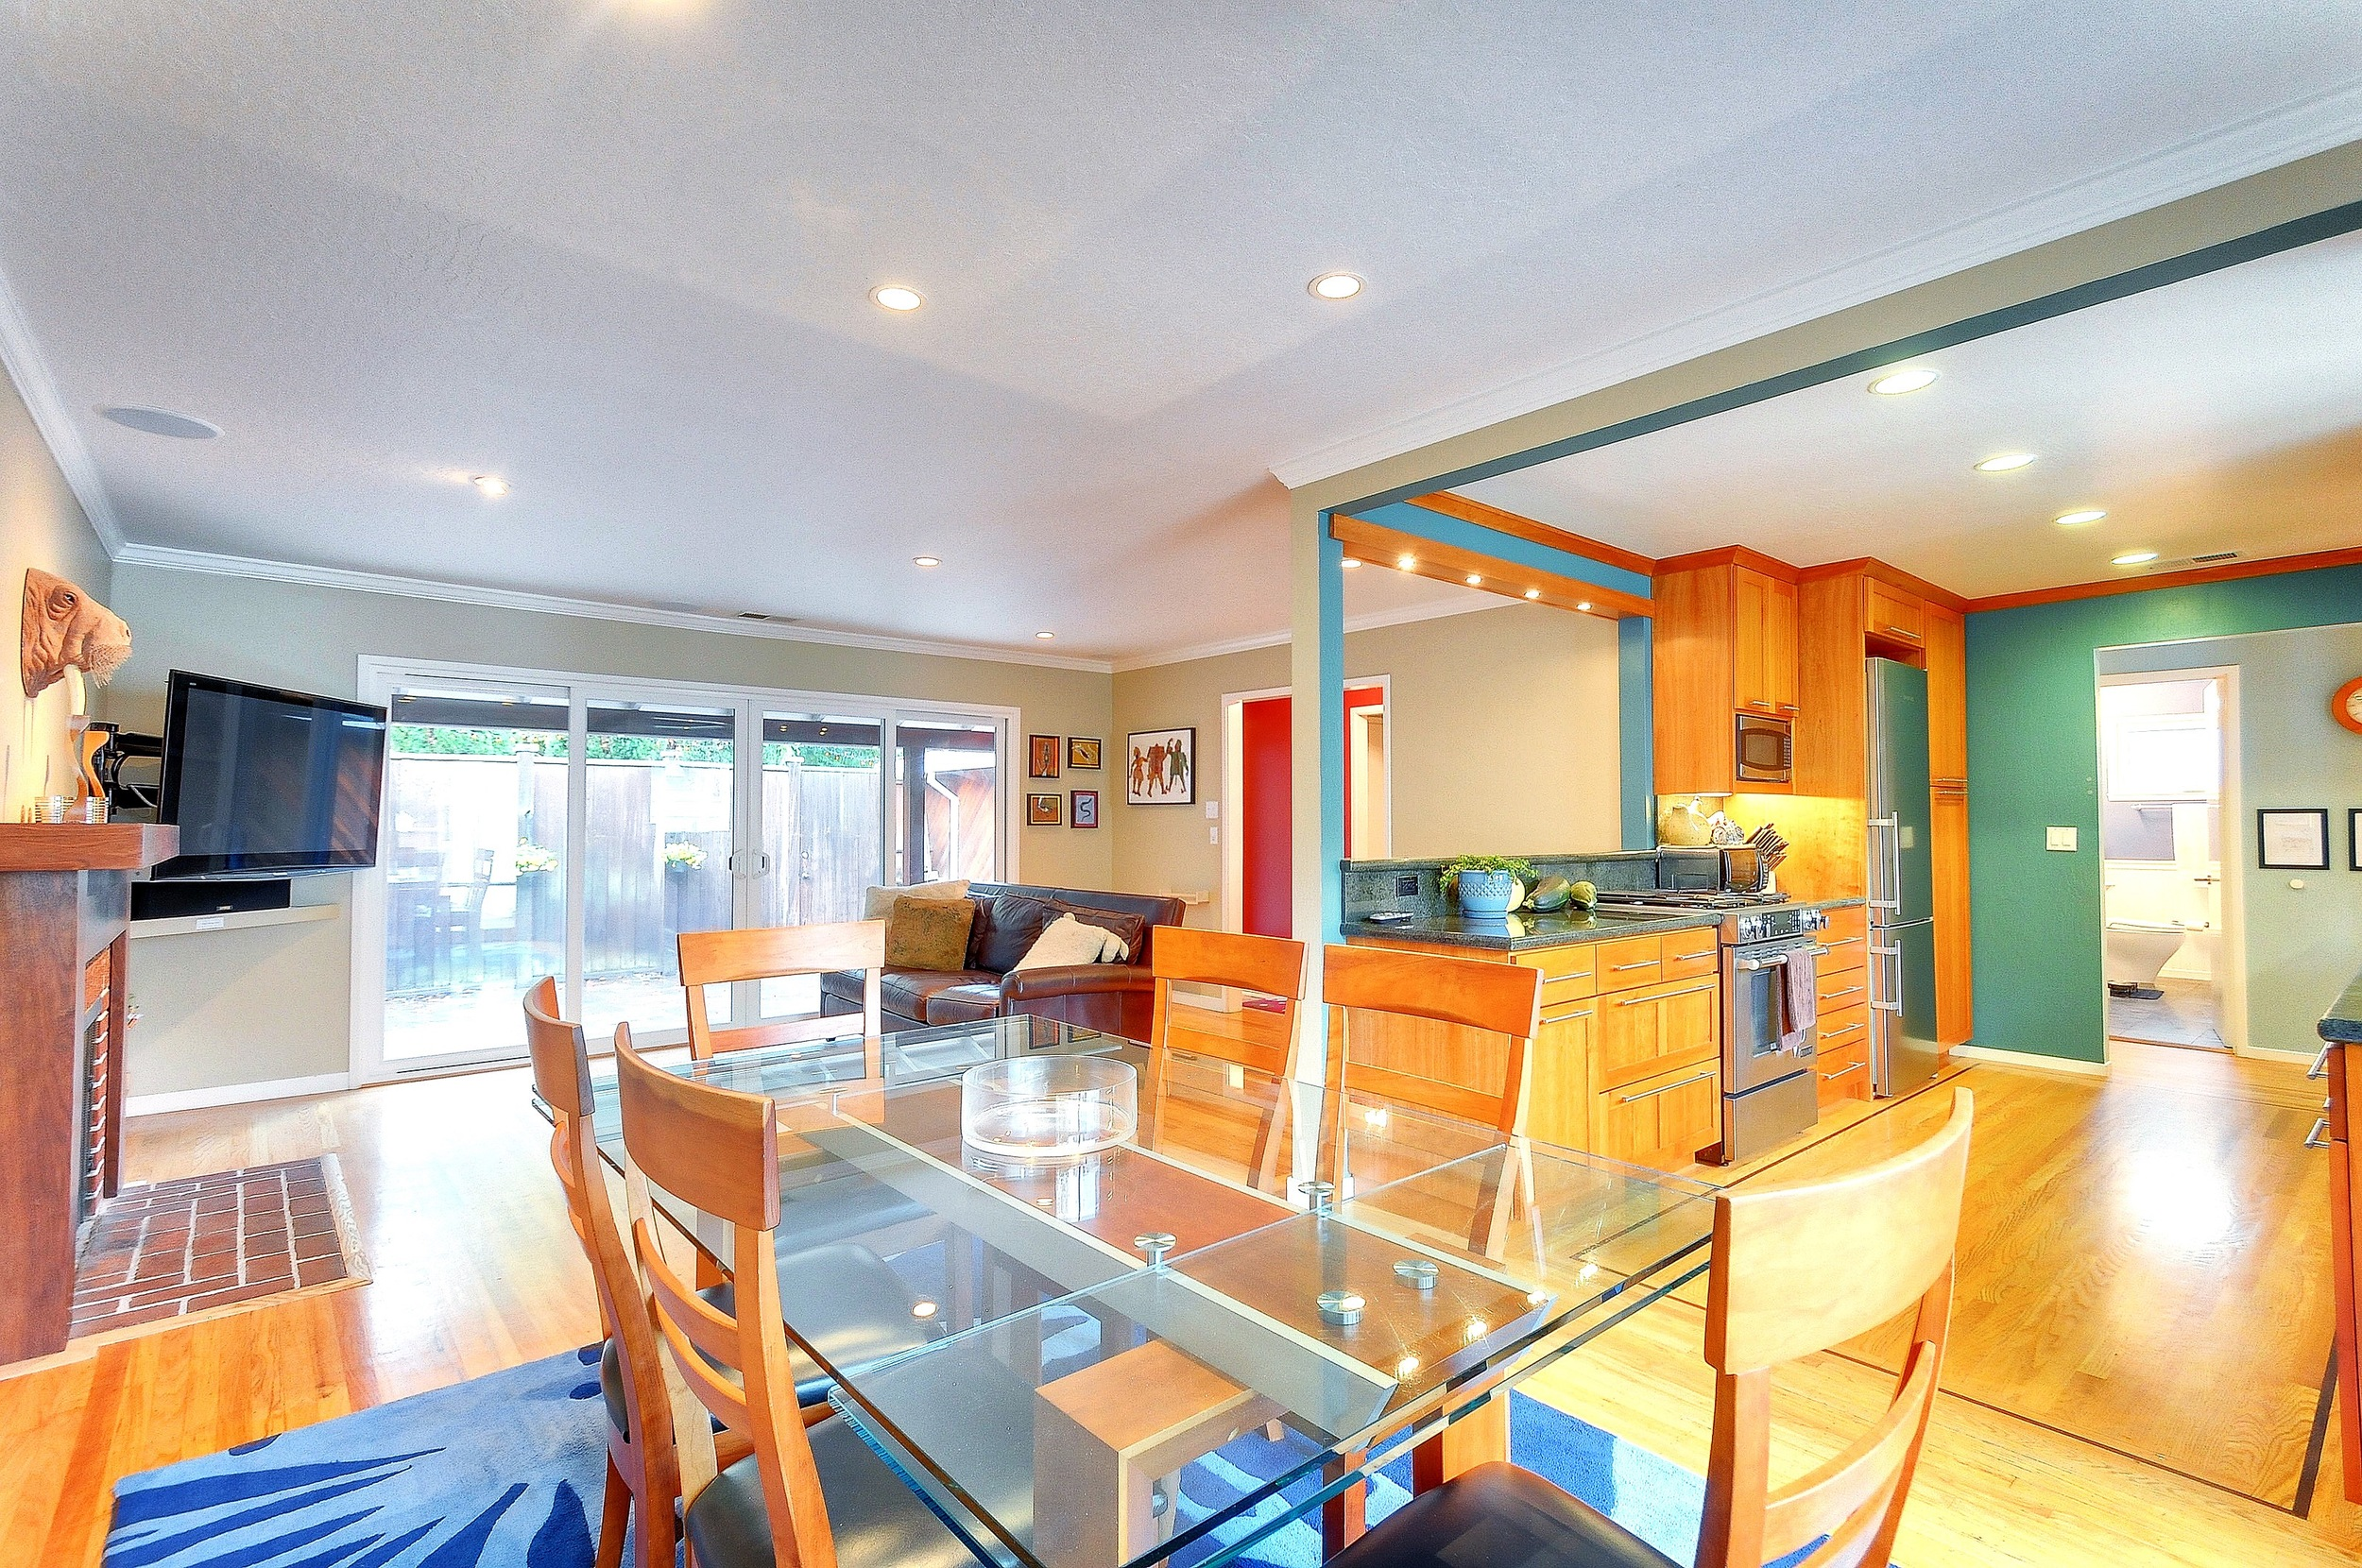 SOLD:  153 Bay Rd, Menlo Park  Fully updated home with many high-end amenities  Offered at $1,849,000